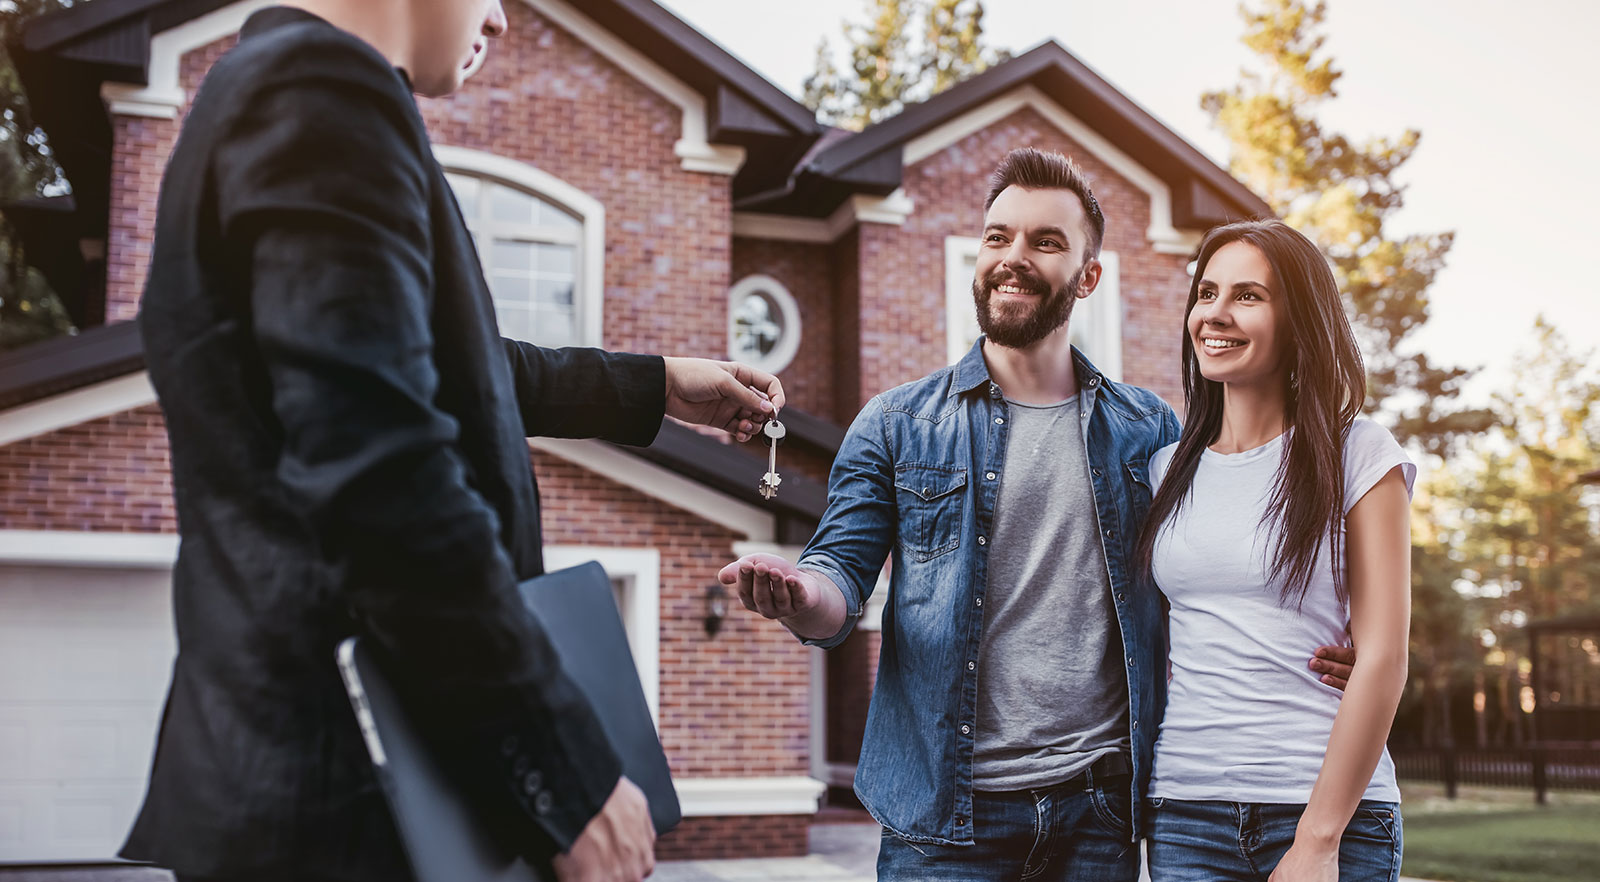 What You Need To Know About The Difference Between a REALTOR® and a Real Estate Agent